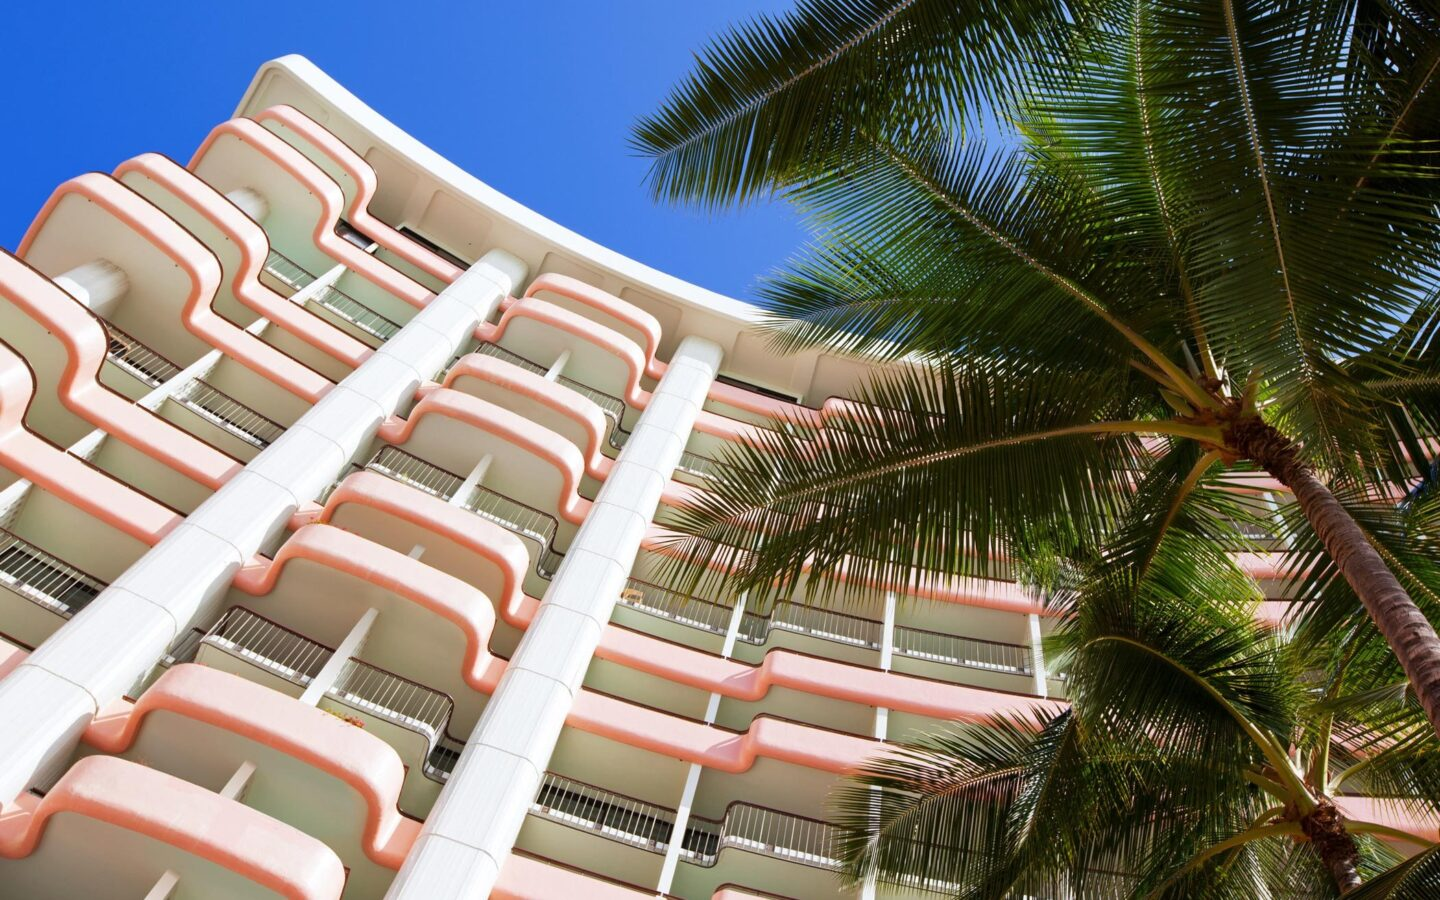 white and pink building with palm tree